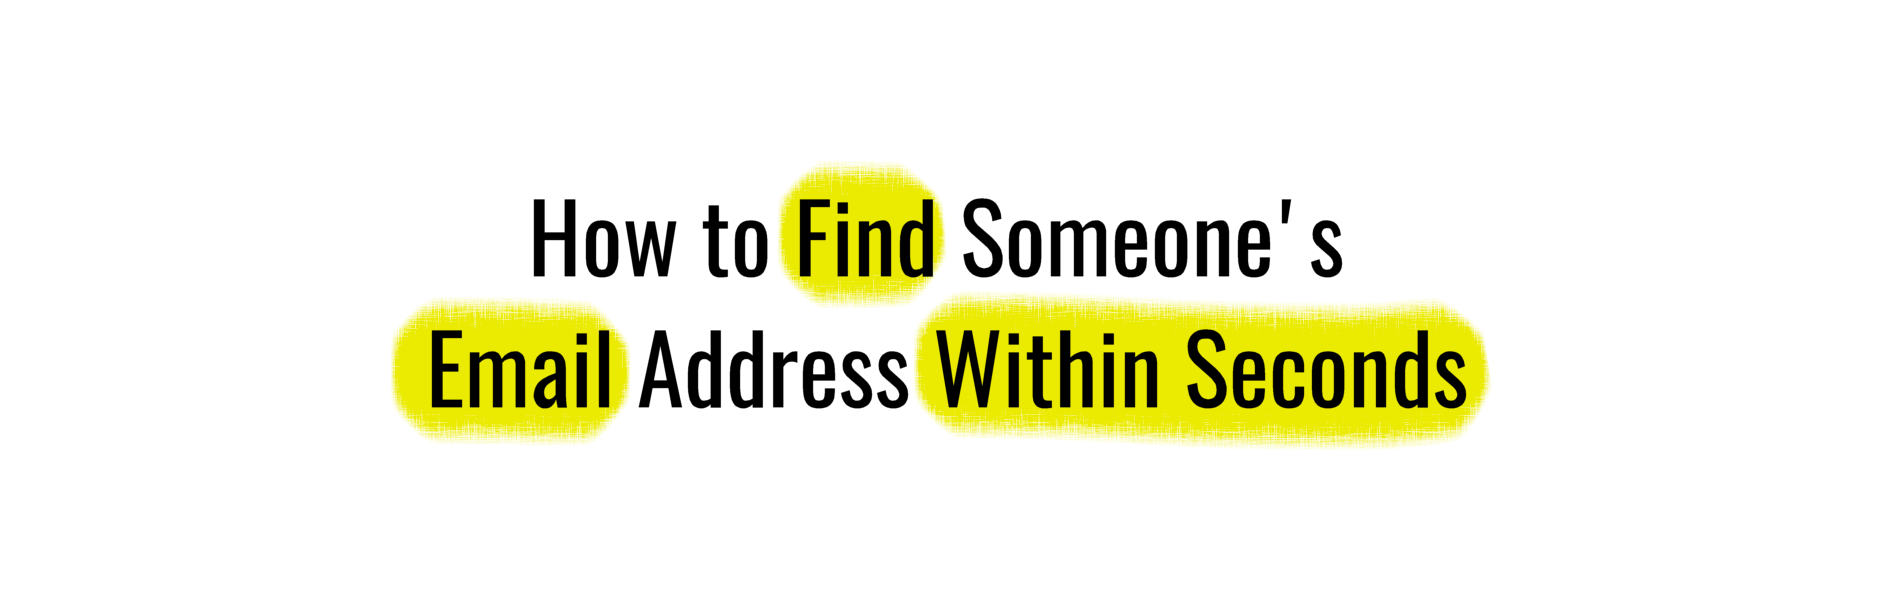 How To Find Anyone's Email Address In 30 Seconds Or Less